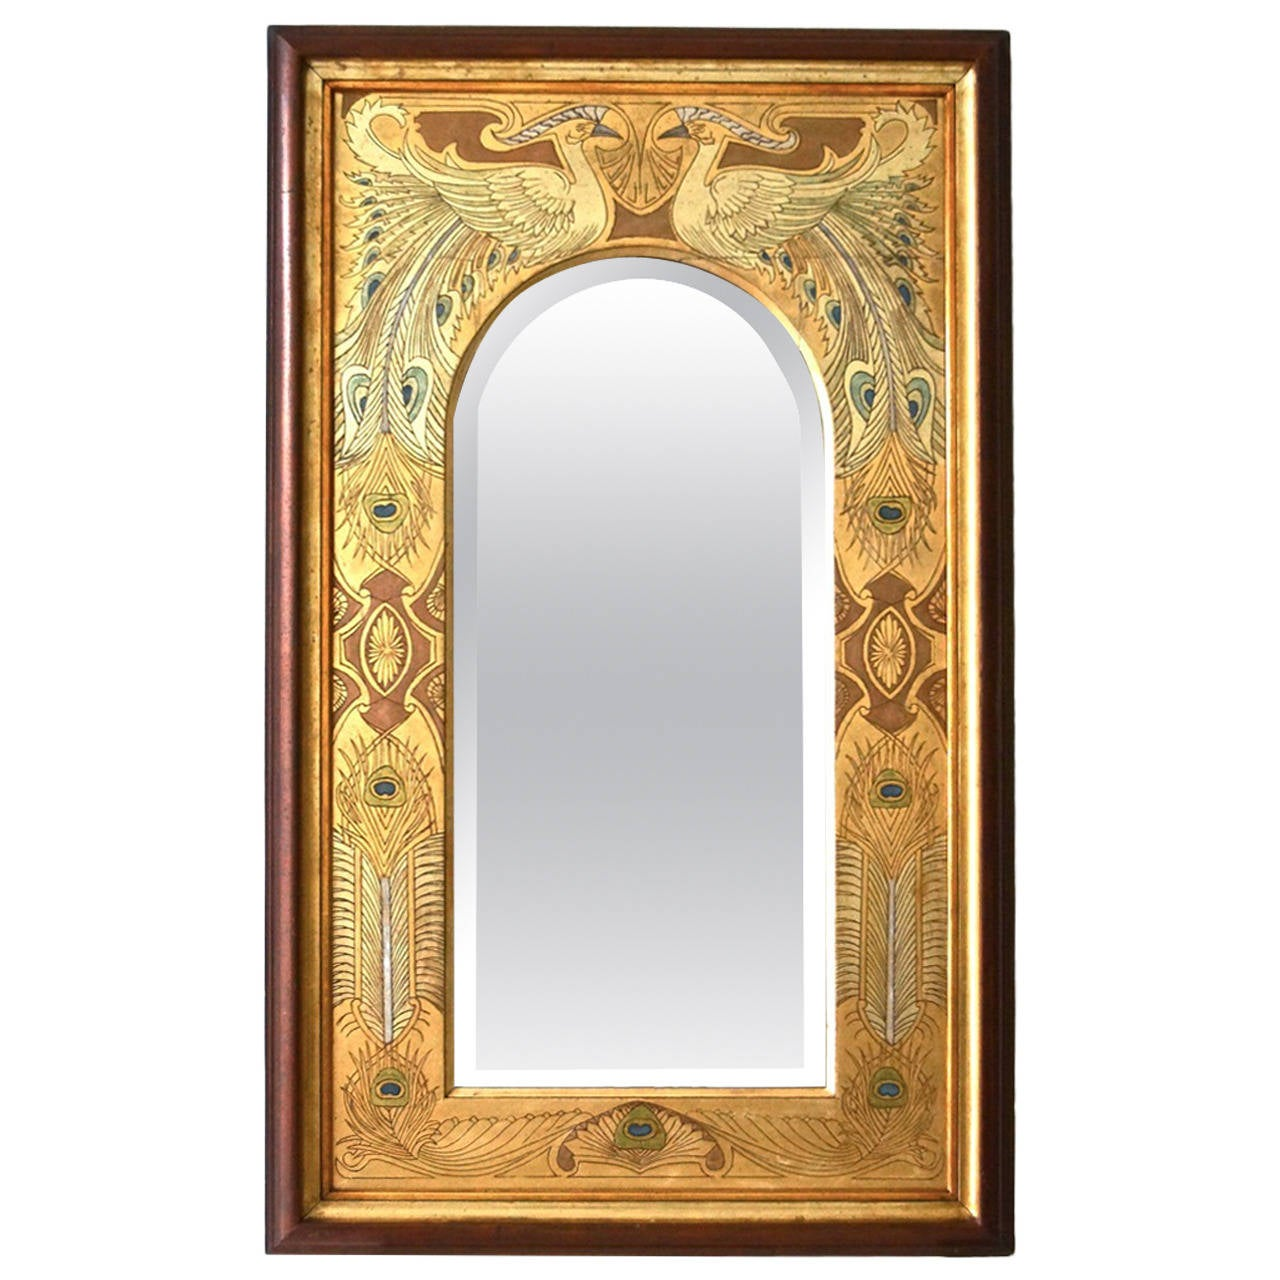 Art nouveau wall mirrors for sale large art deco wall for Mirrors to purchase